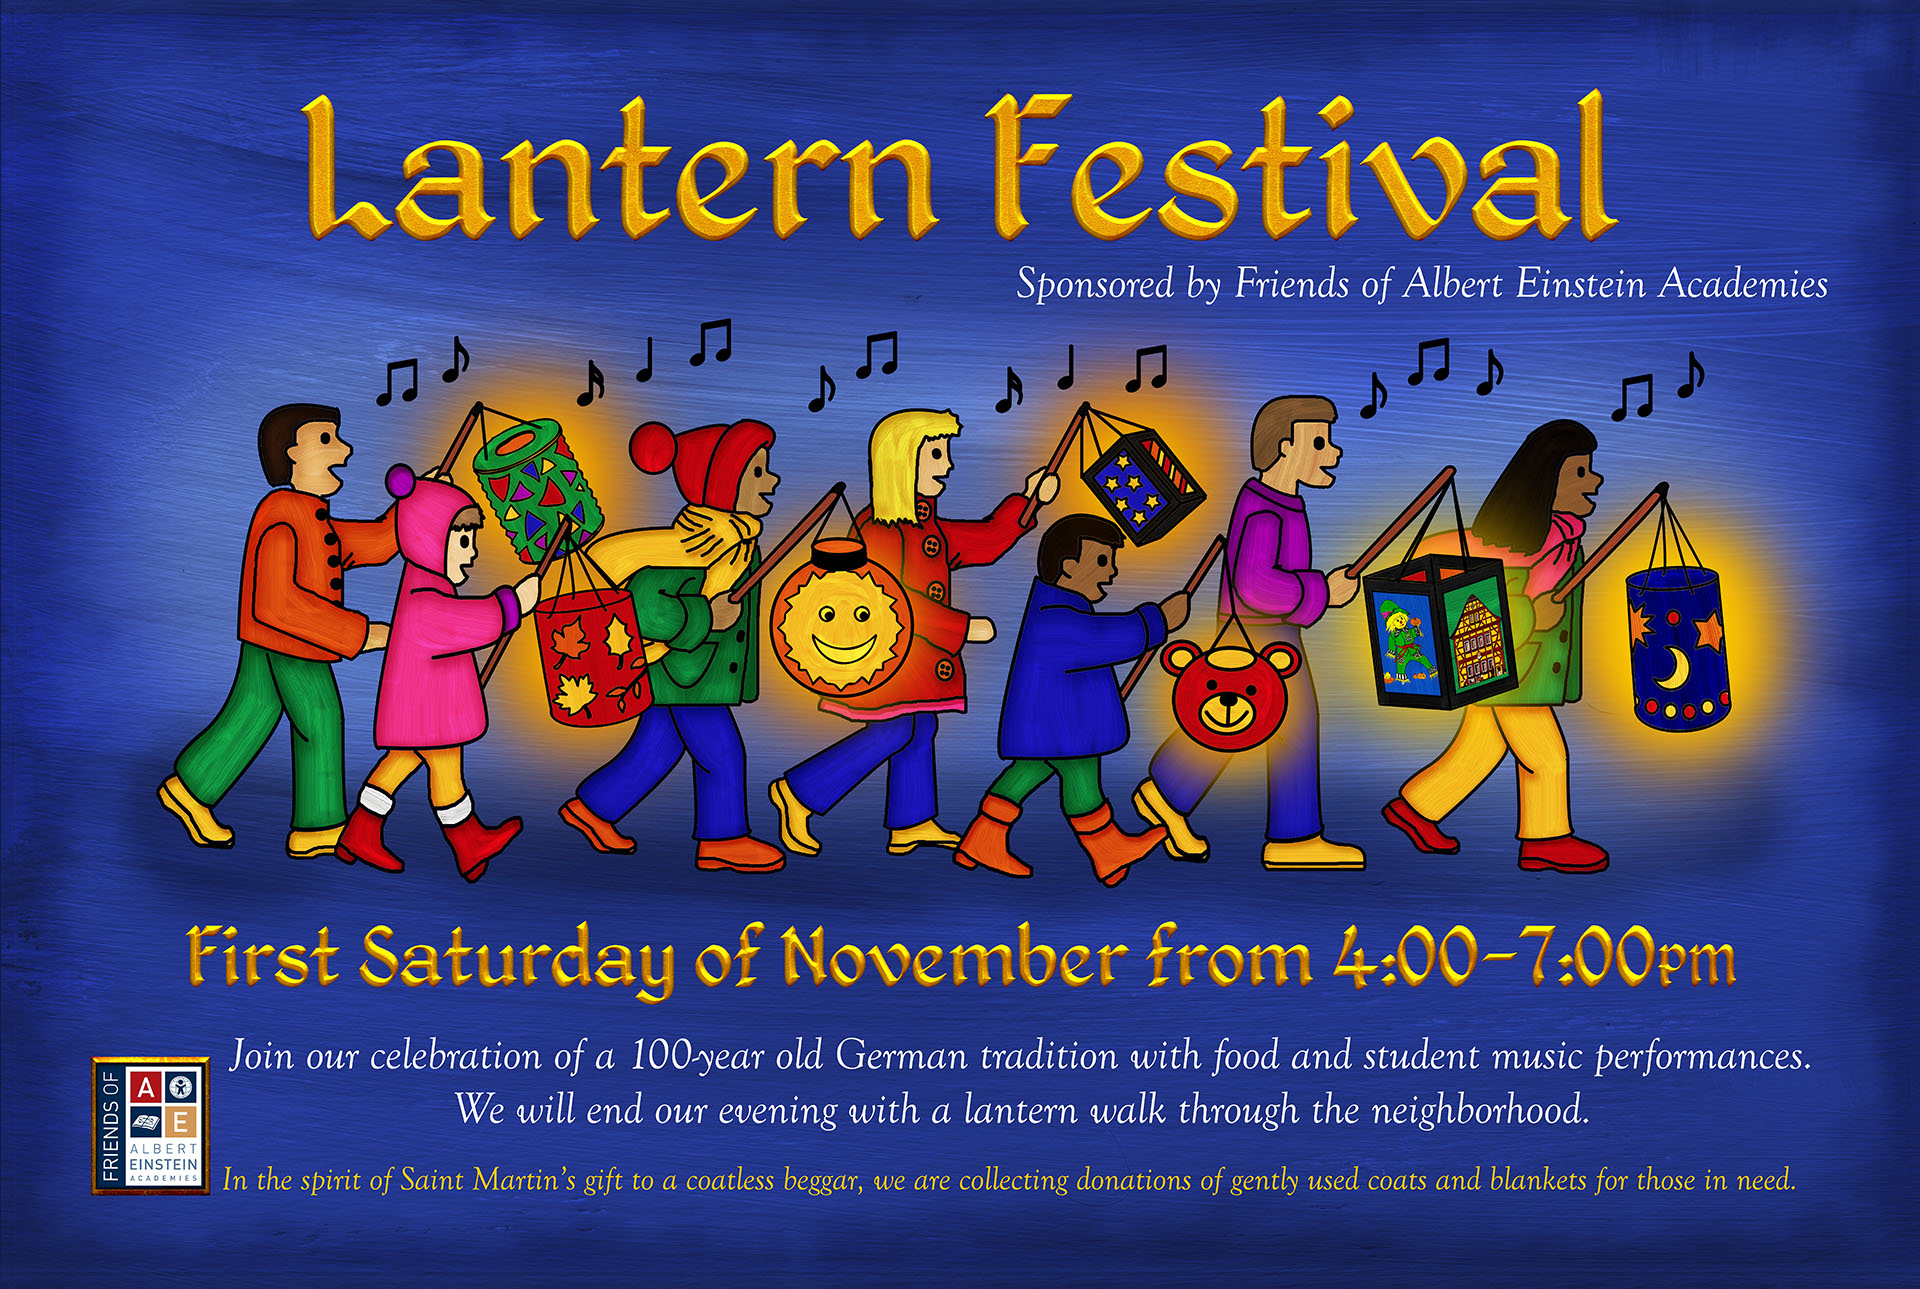 aea-2016-lanternfest-website.jpg